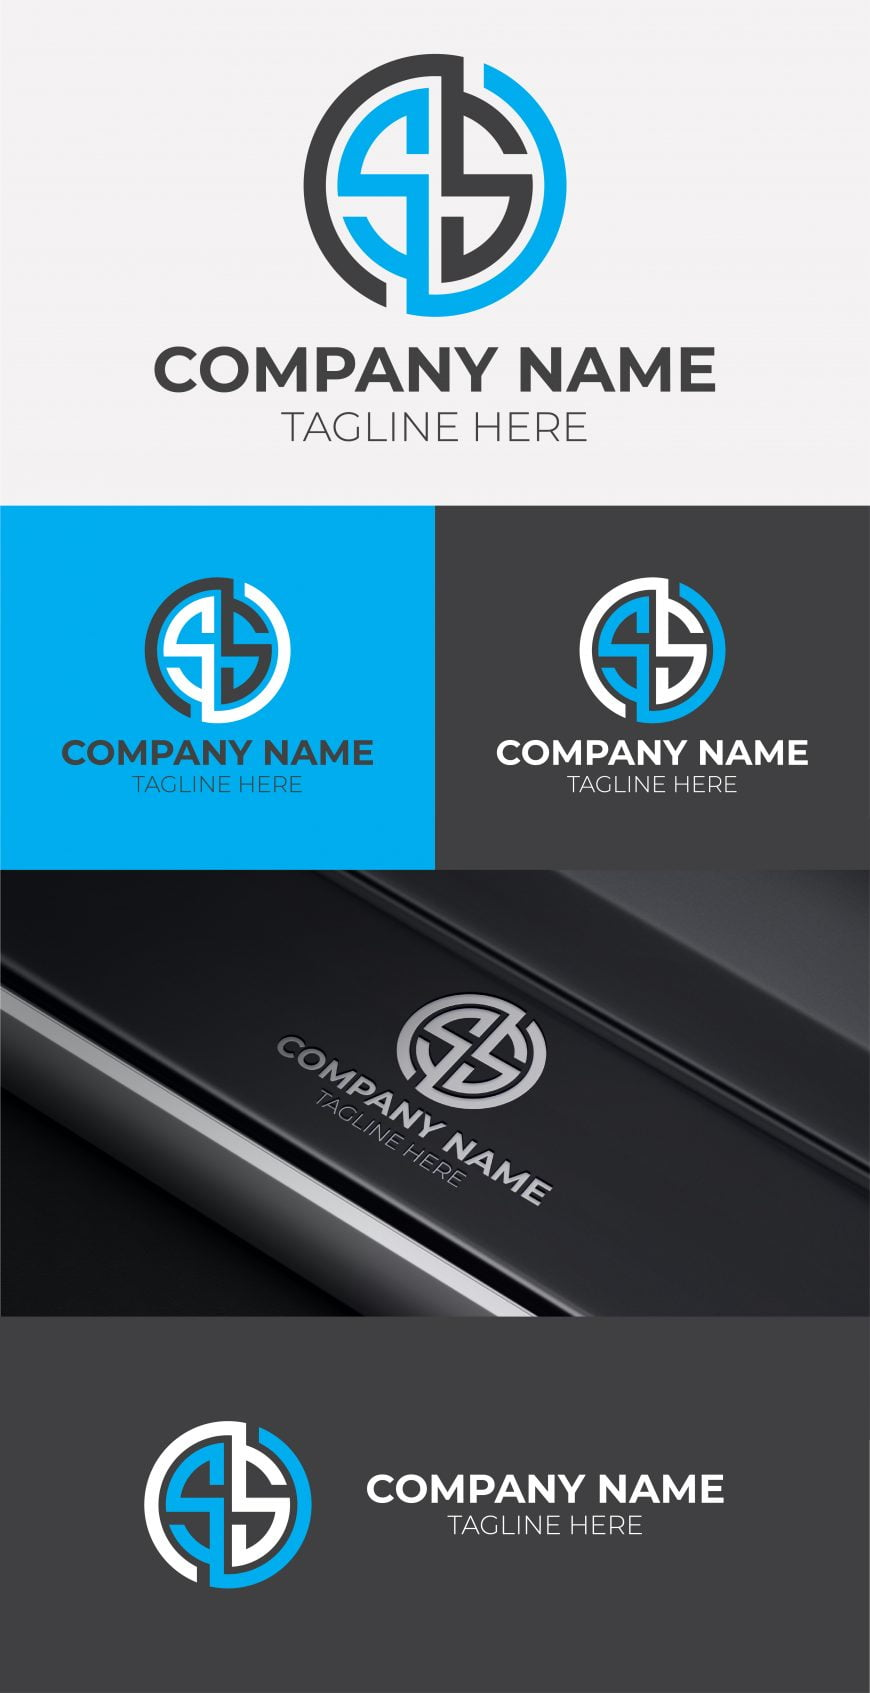 SS-LOGO-FREE-TEMPLATE-1-scaled